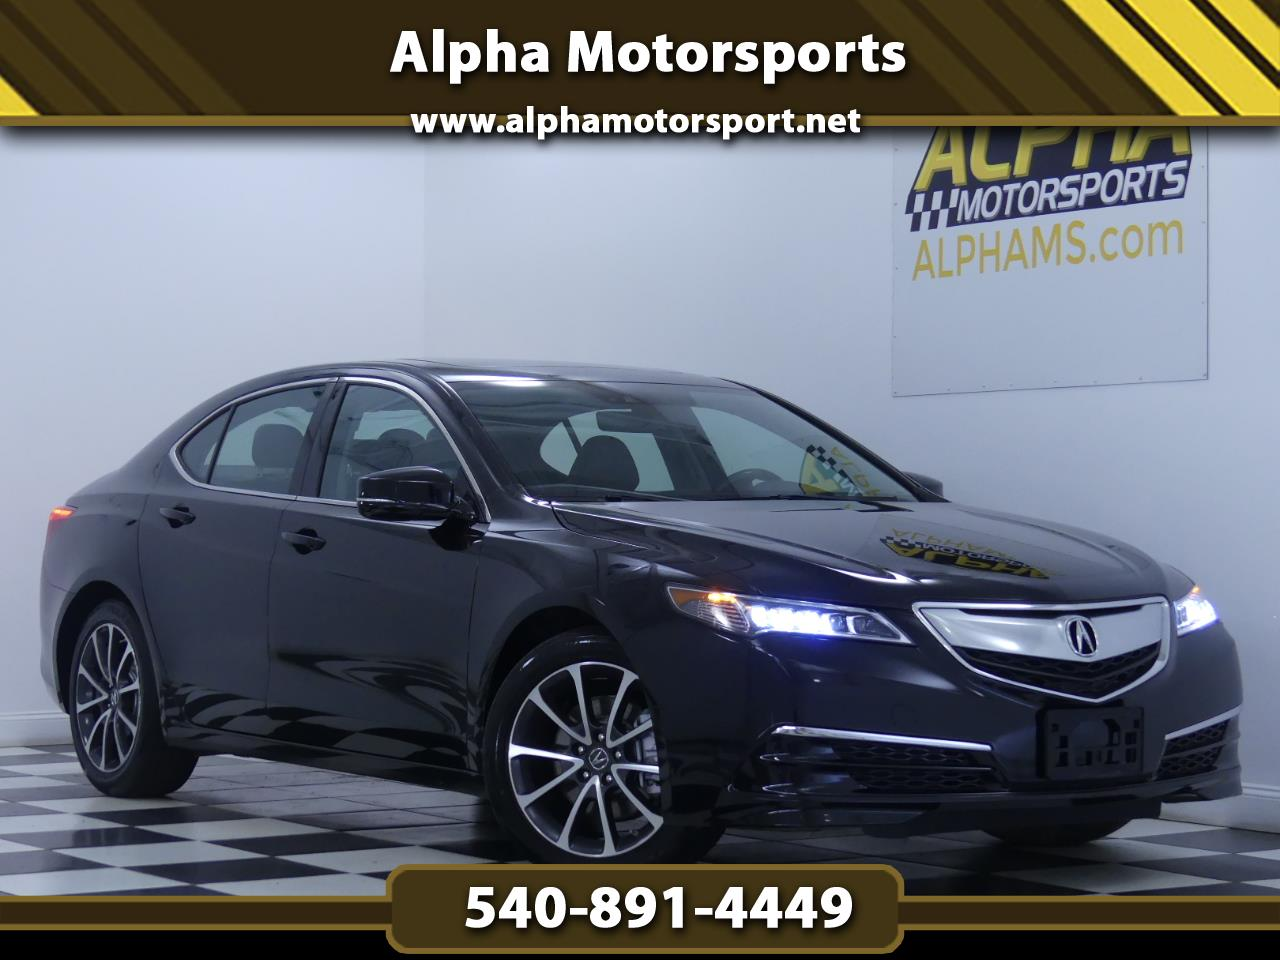 2016 Acura TLX V6 w/ Technology Package